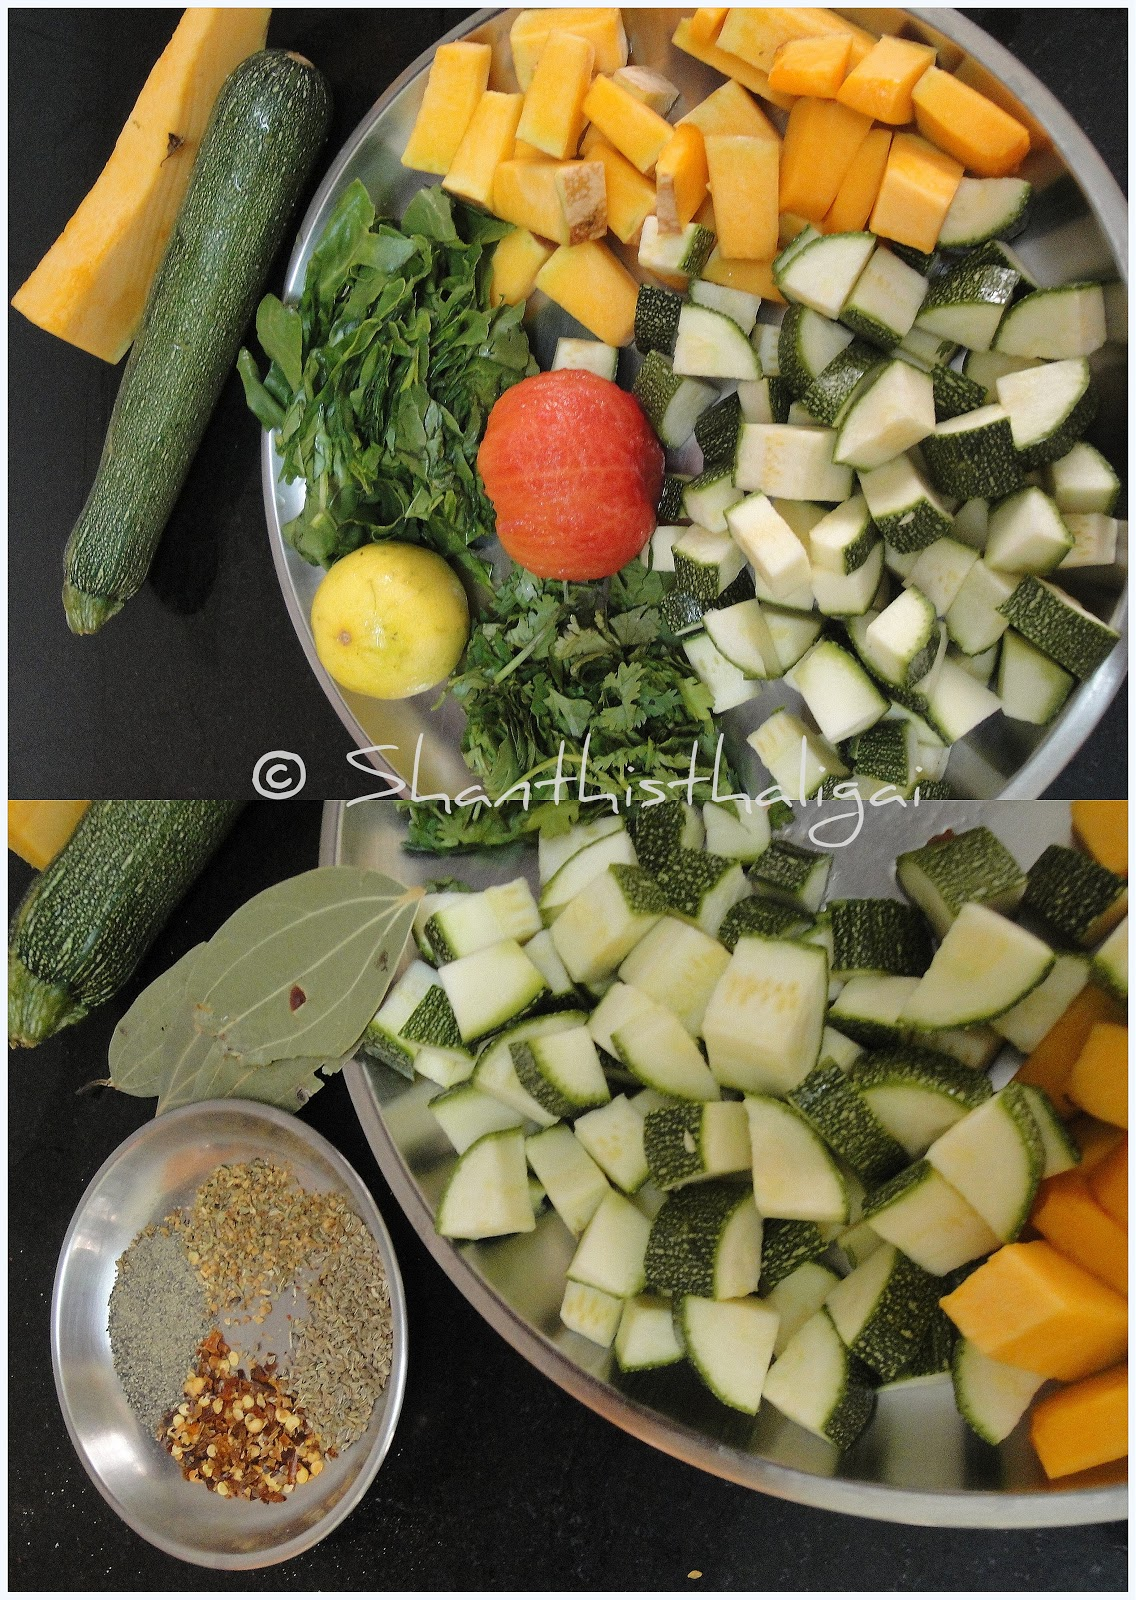 How to make quinoa vegetable soup?